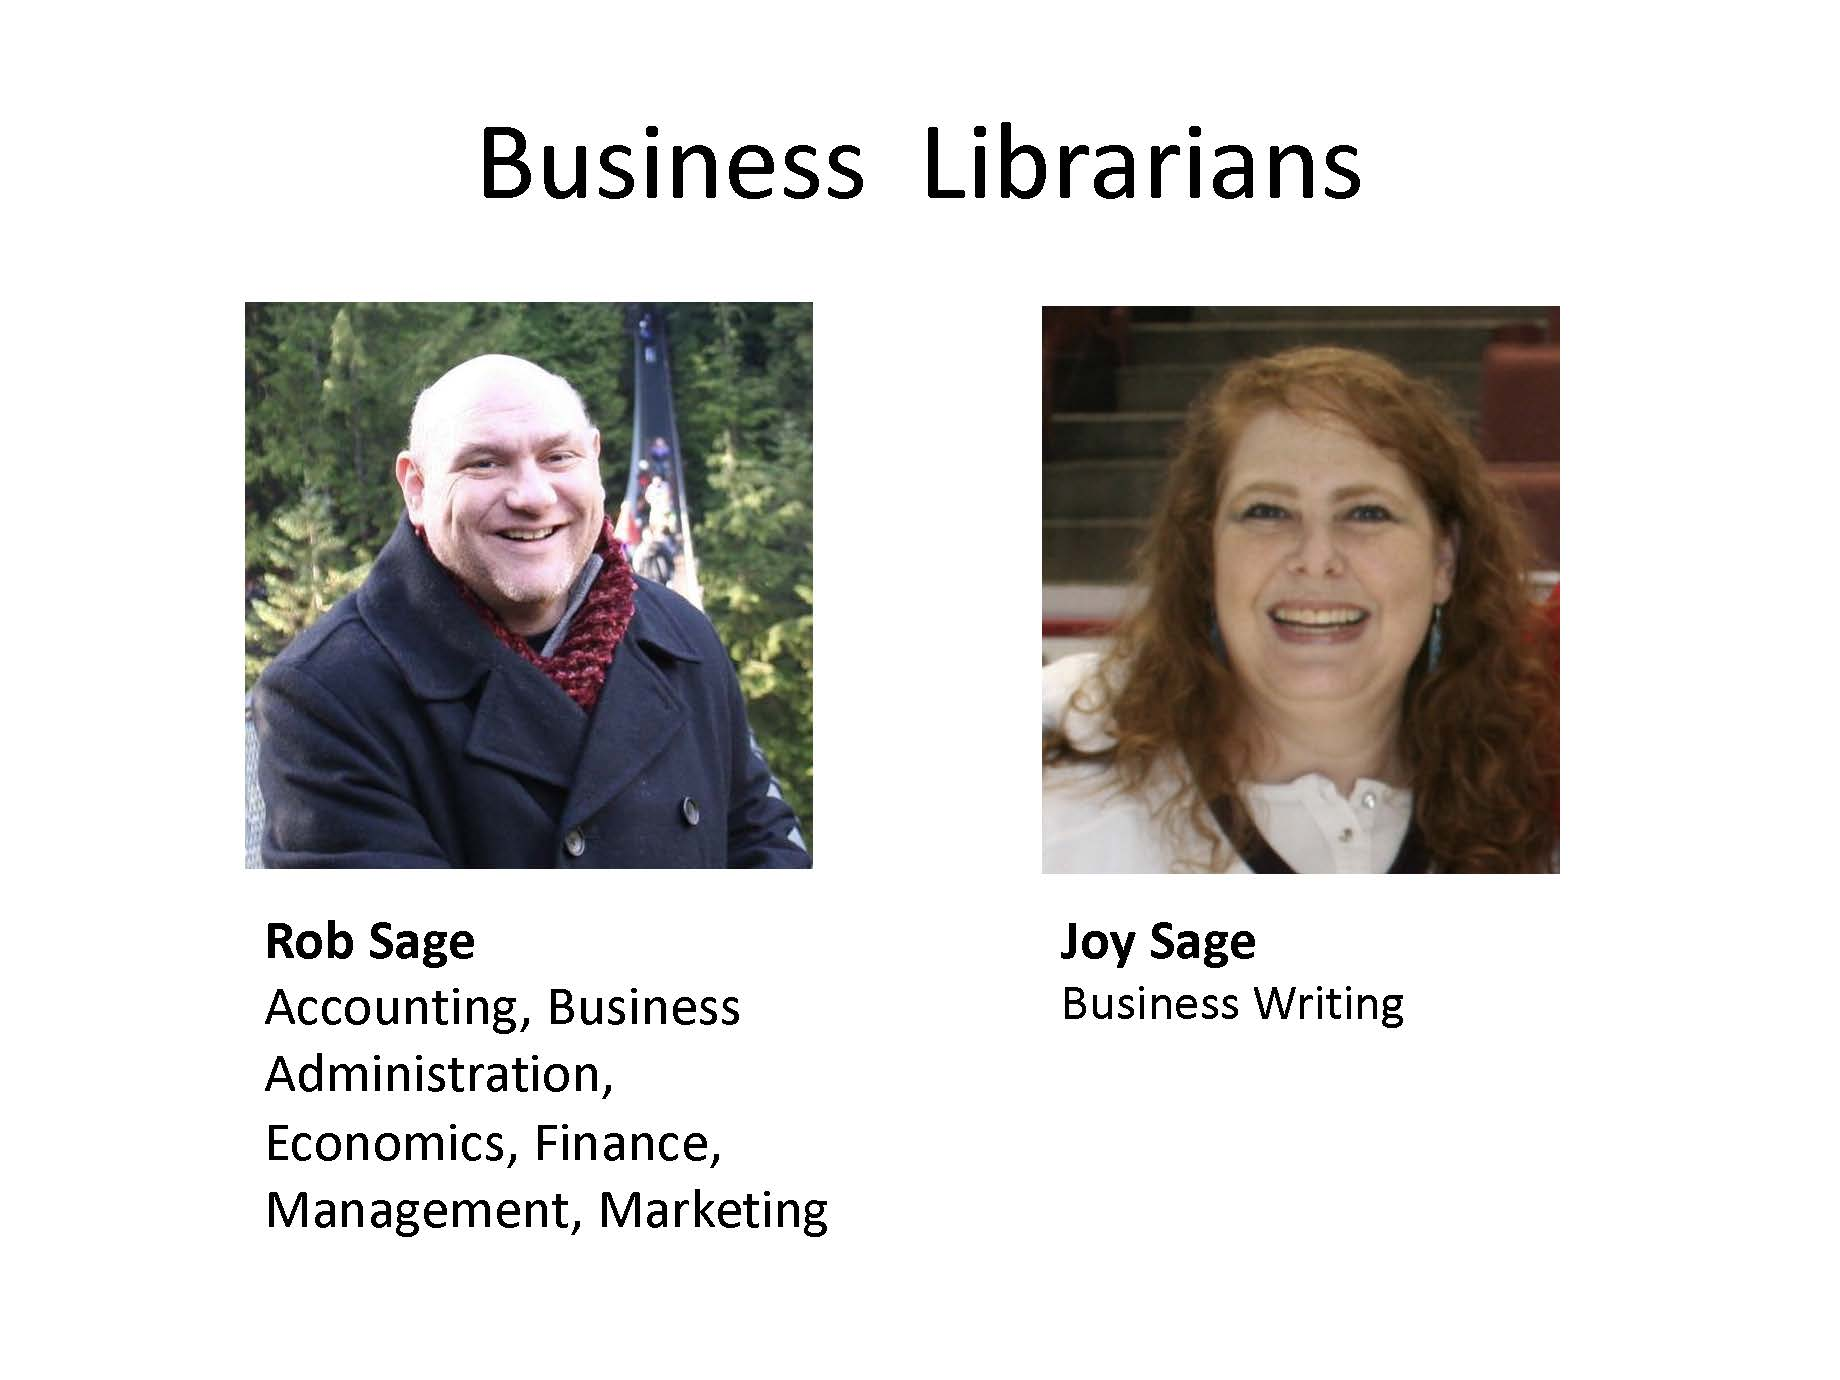 Business Librarians